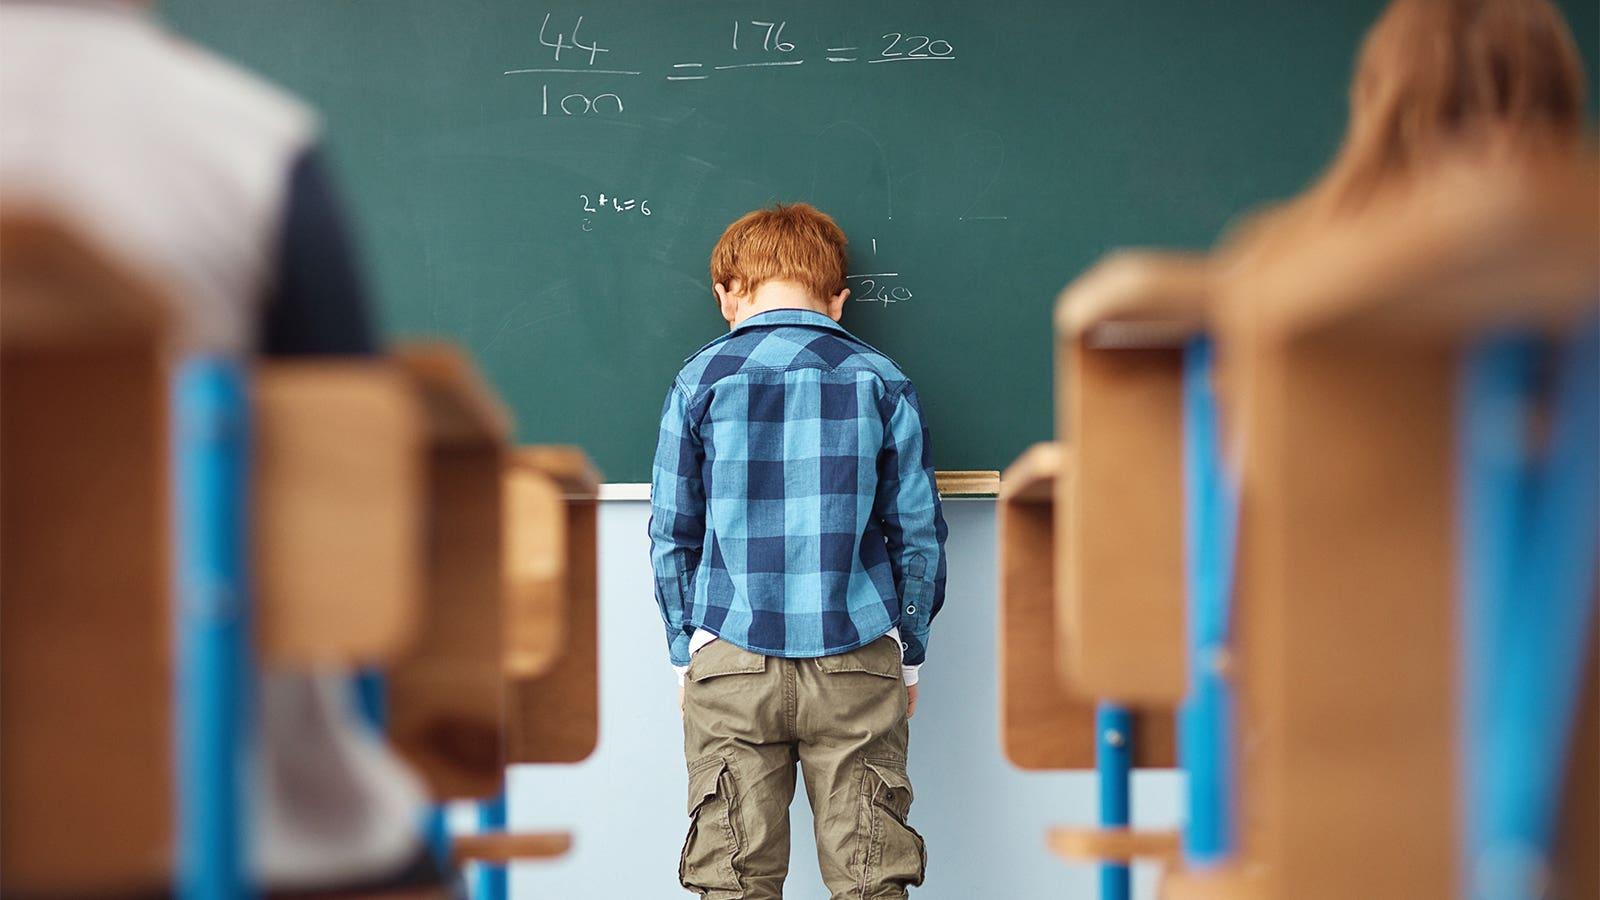 A young boy with his head on the blackboard at the front of a classroom.